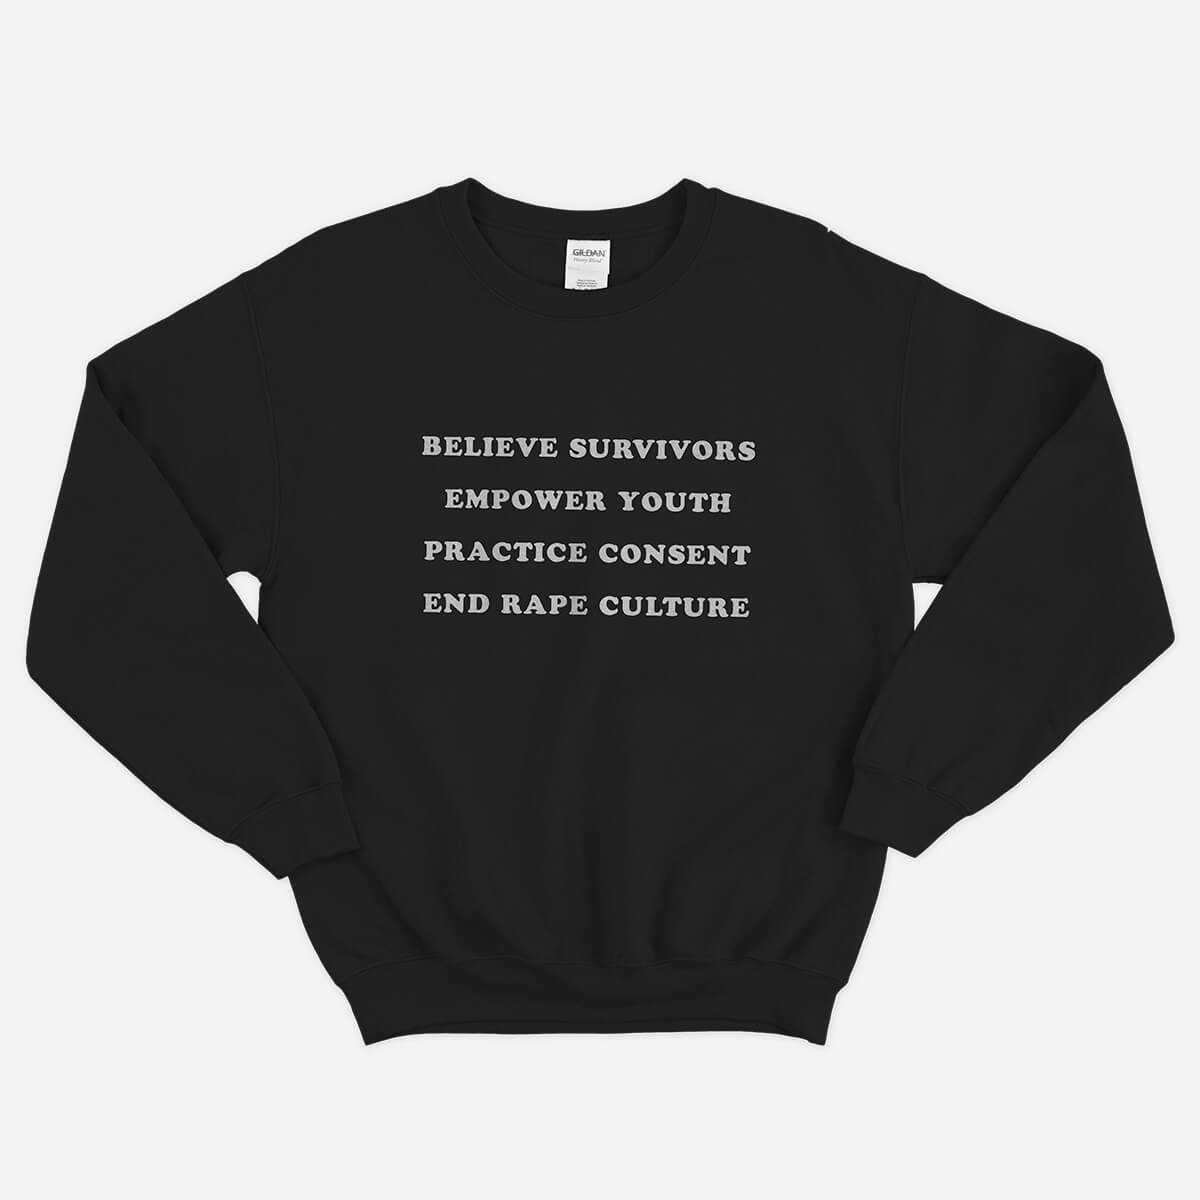 Adult crewneck sweatshirt: Black